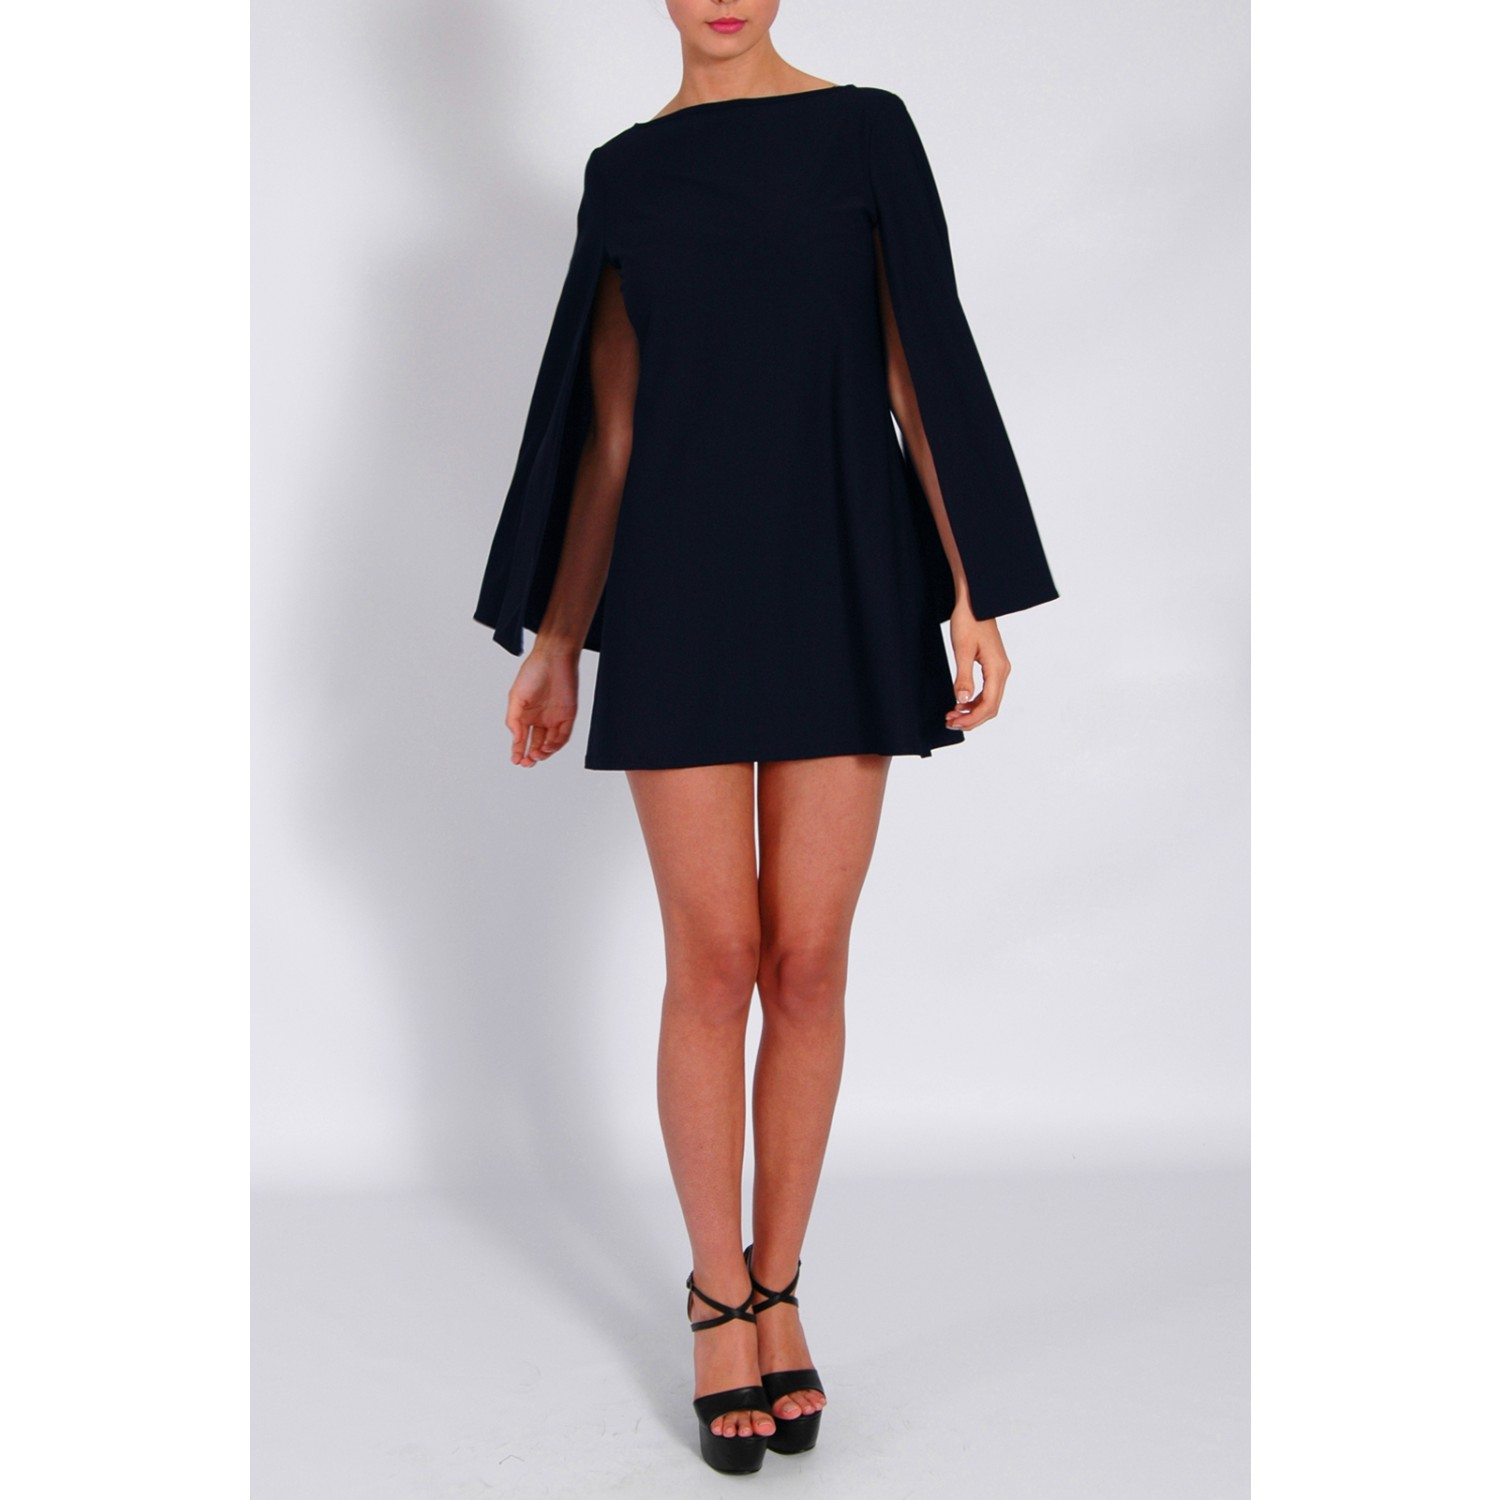 Jessica Wright Wears Navy Cape Sleeve Shift Dress From Rare London